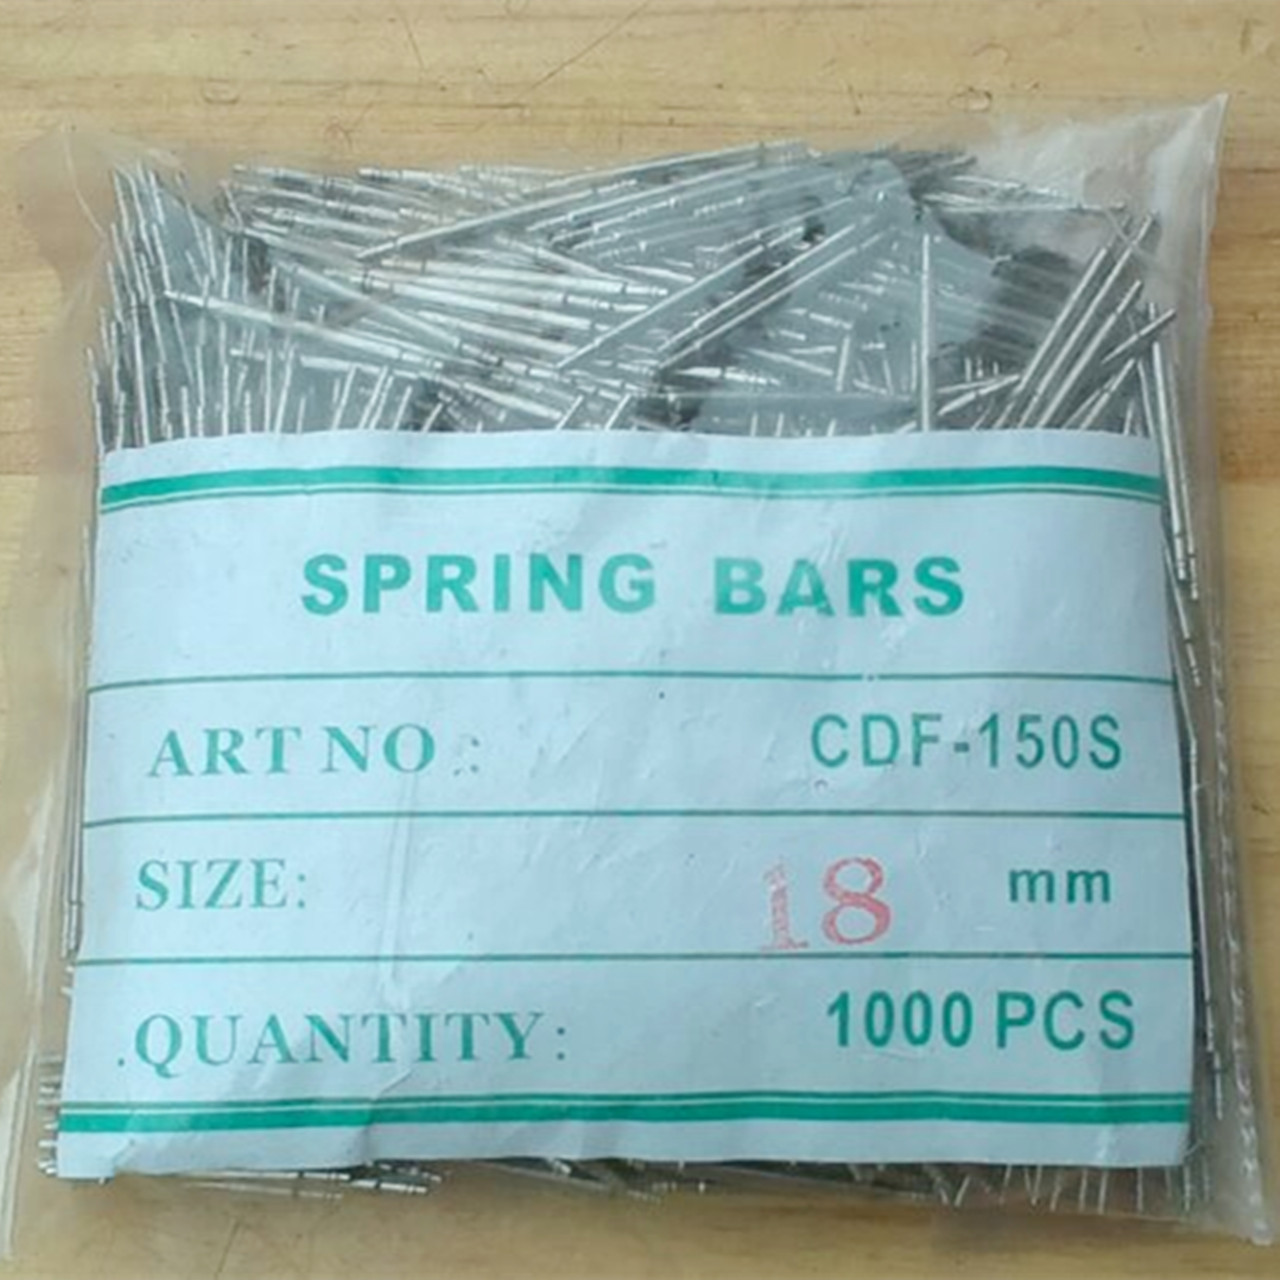 1000pc/pack 1.5mm Diameter Semi-stainless Steel  Spring Bars Strap Changing Pins Watch Pin 18 20 mm m1 5 8 25mm 1pcs watch band spring bars strap link pins repair tool watchmaker stainless steel watch accessories kit set